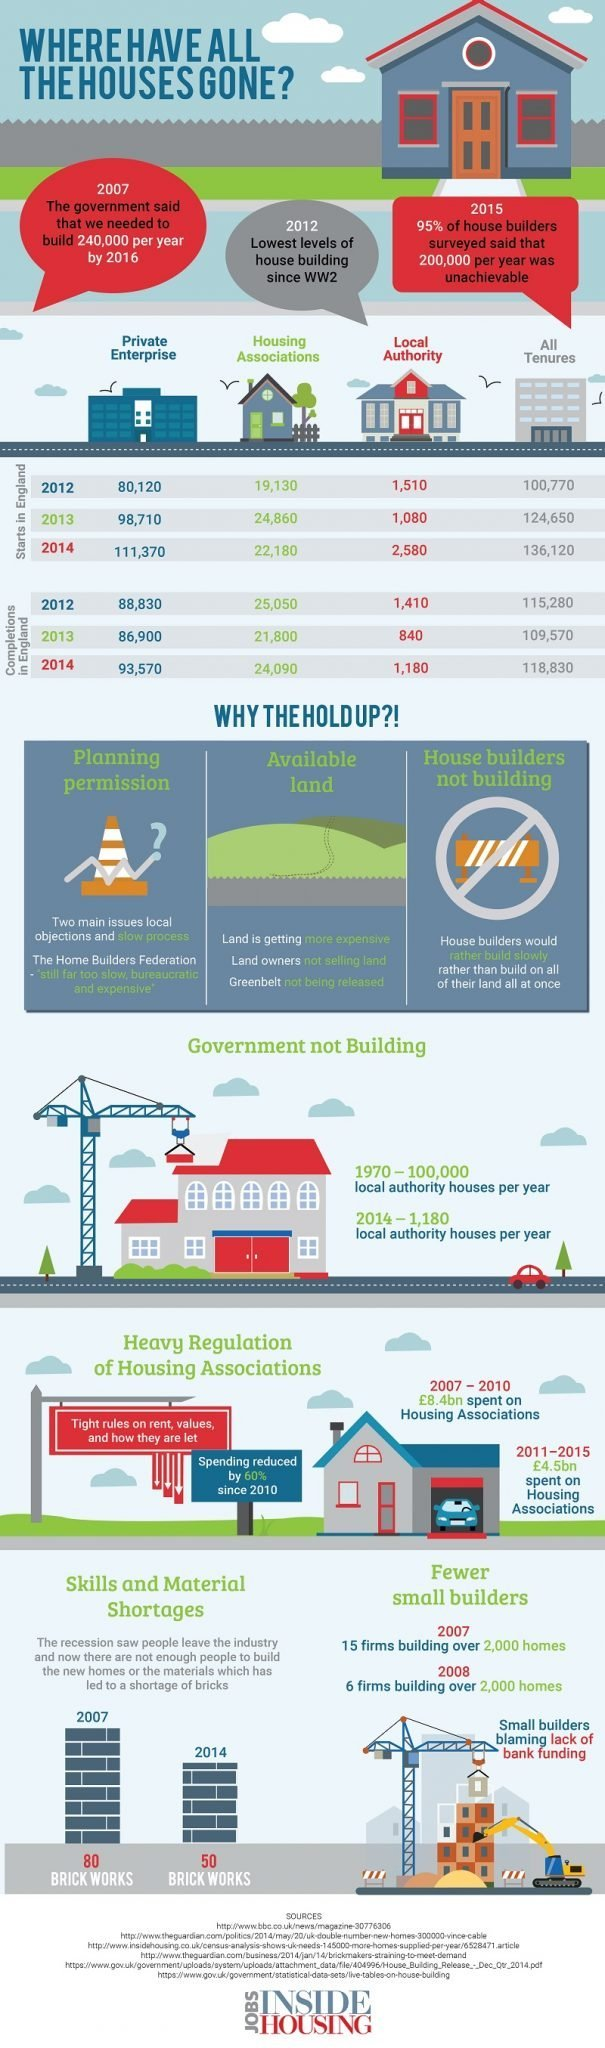 where-have-all-the-houses-gone-infographic-inside-housing